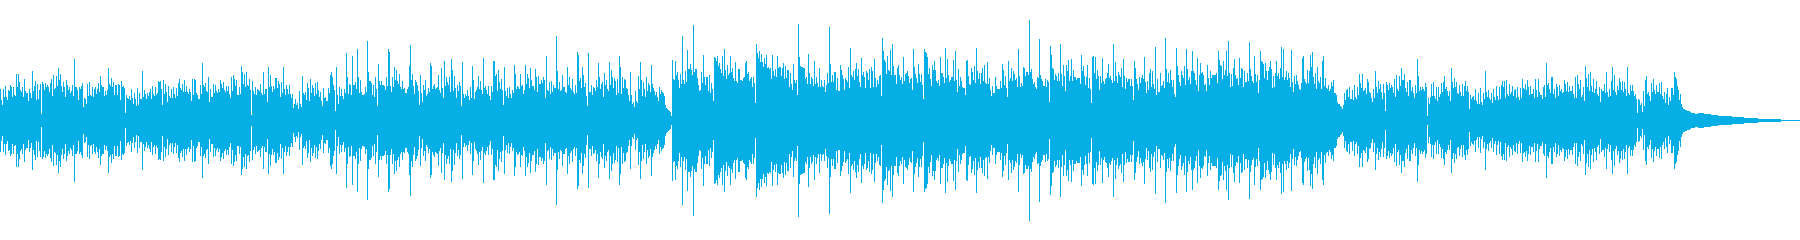 Acoustic Memories's reproduced waveform